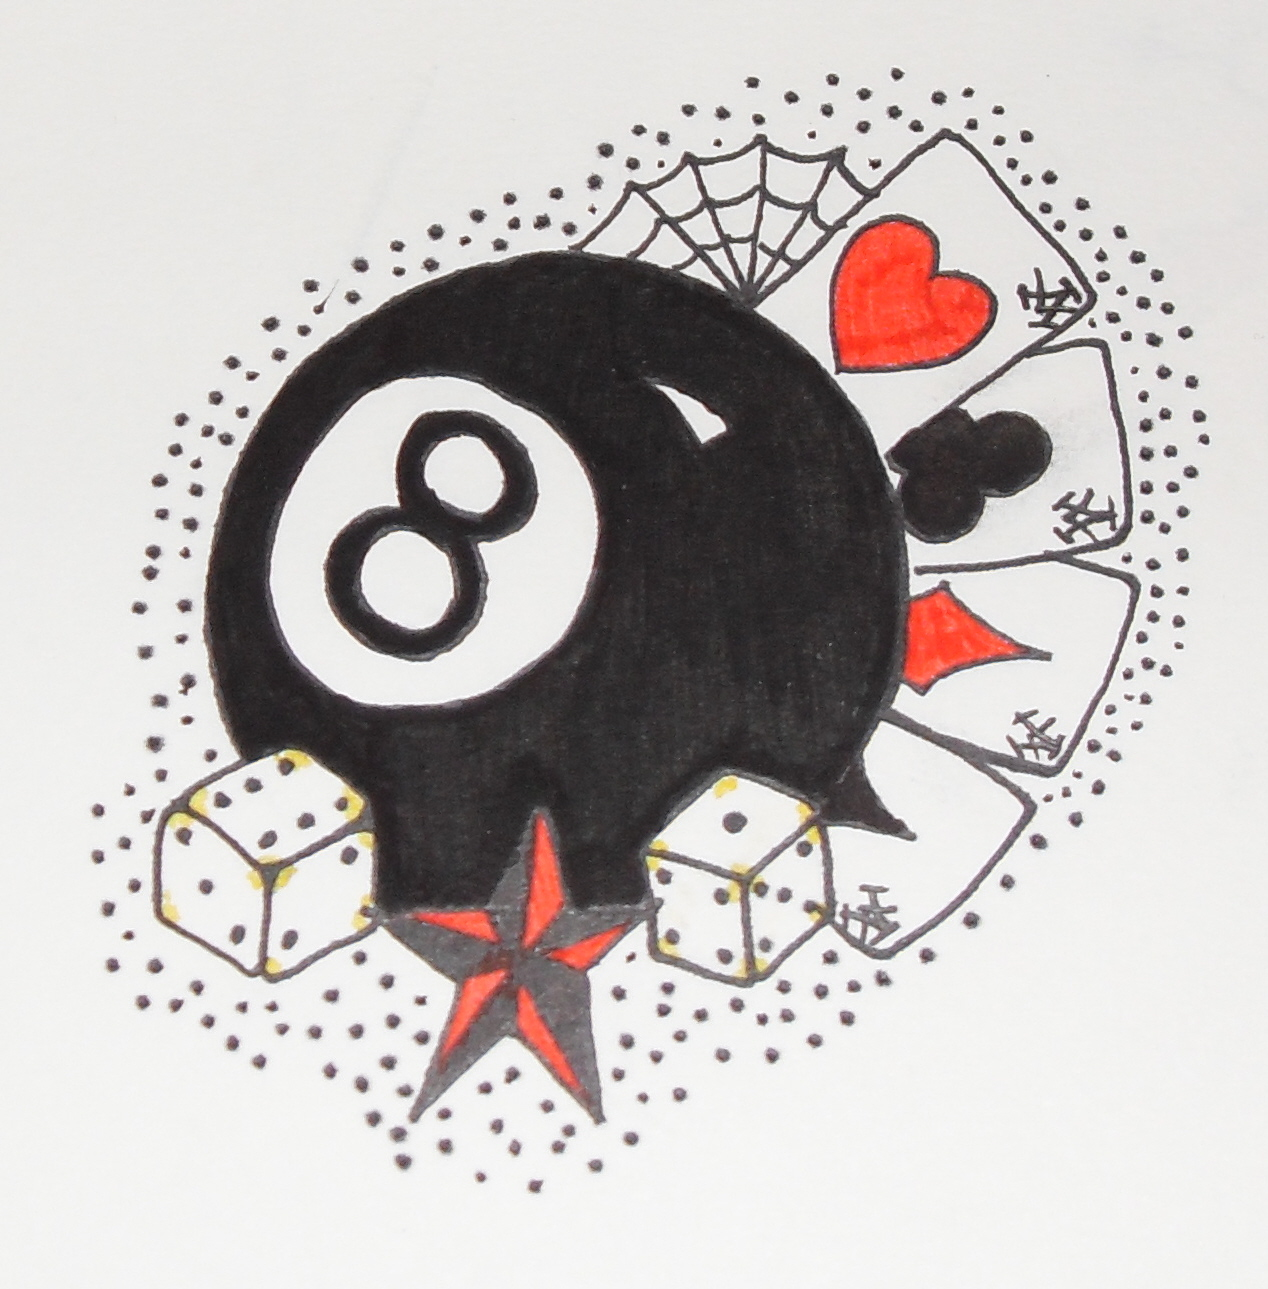 8 Ball Dice n Cards Tattoo Design